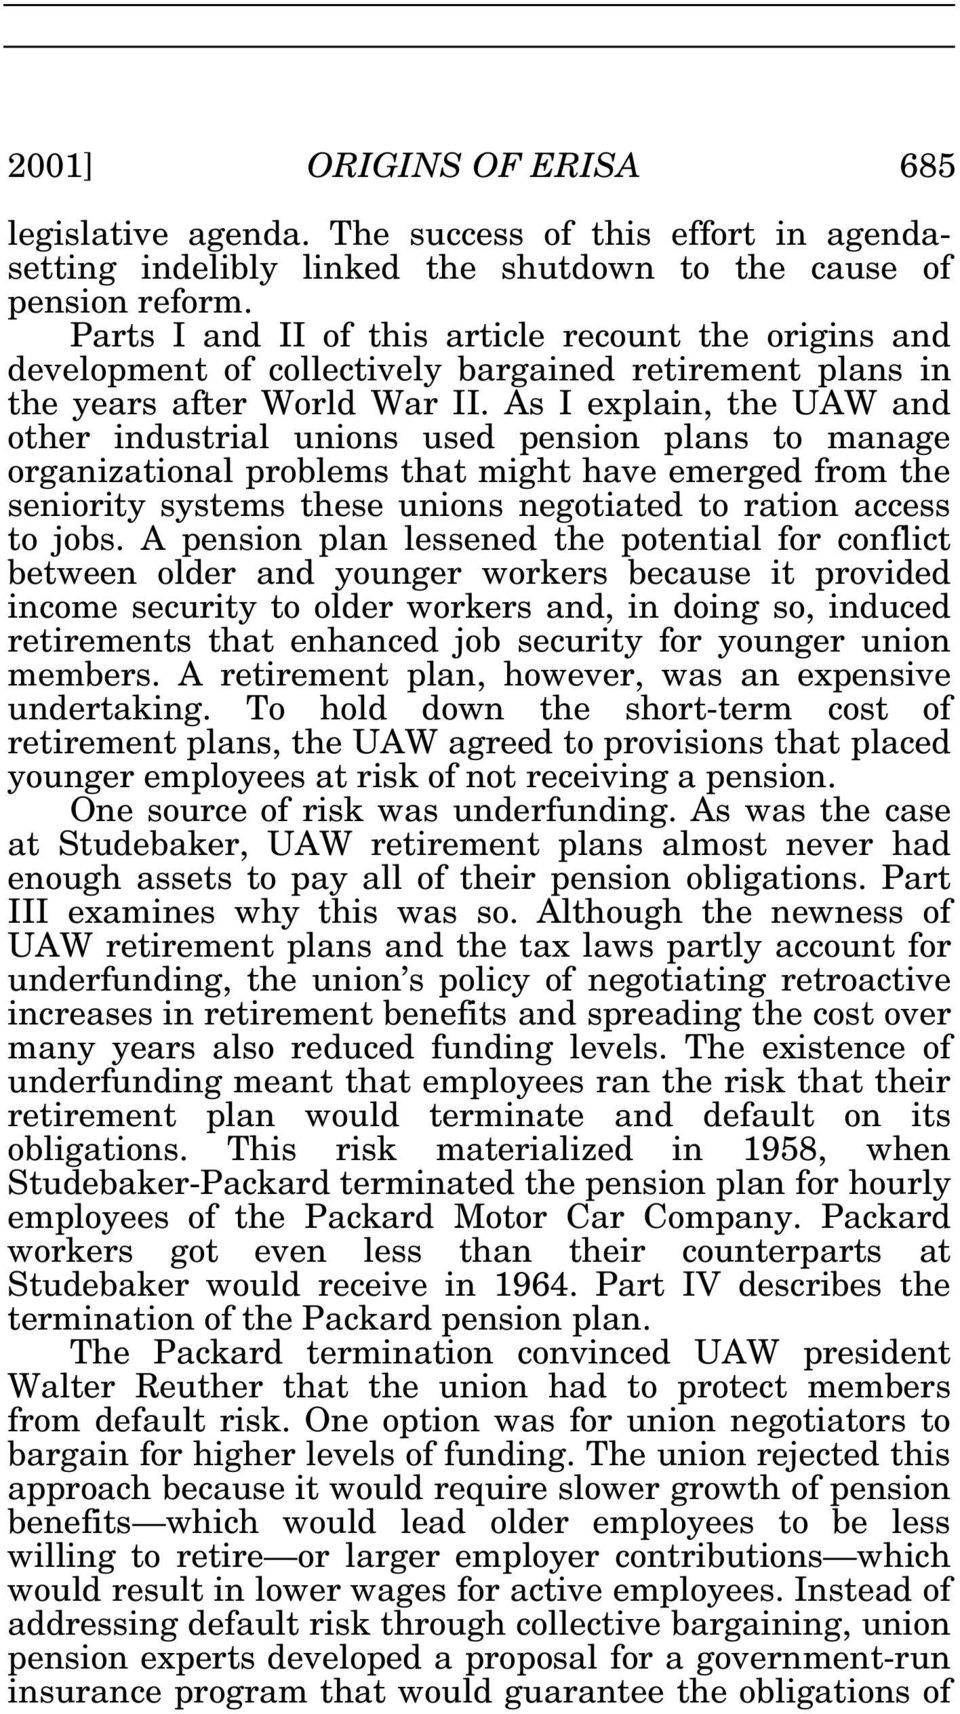 As I explain, the UAW and other industrial unions used pension plans to manage organizational problems that might have emerged from the seniority systems these unions negotiated to ration access to